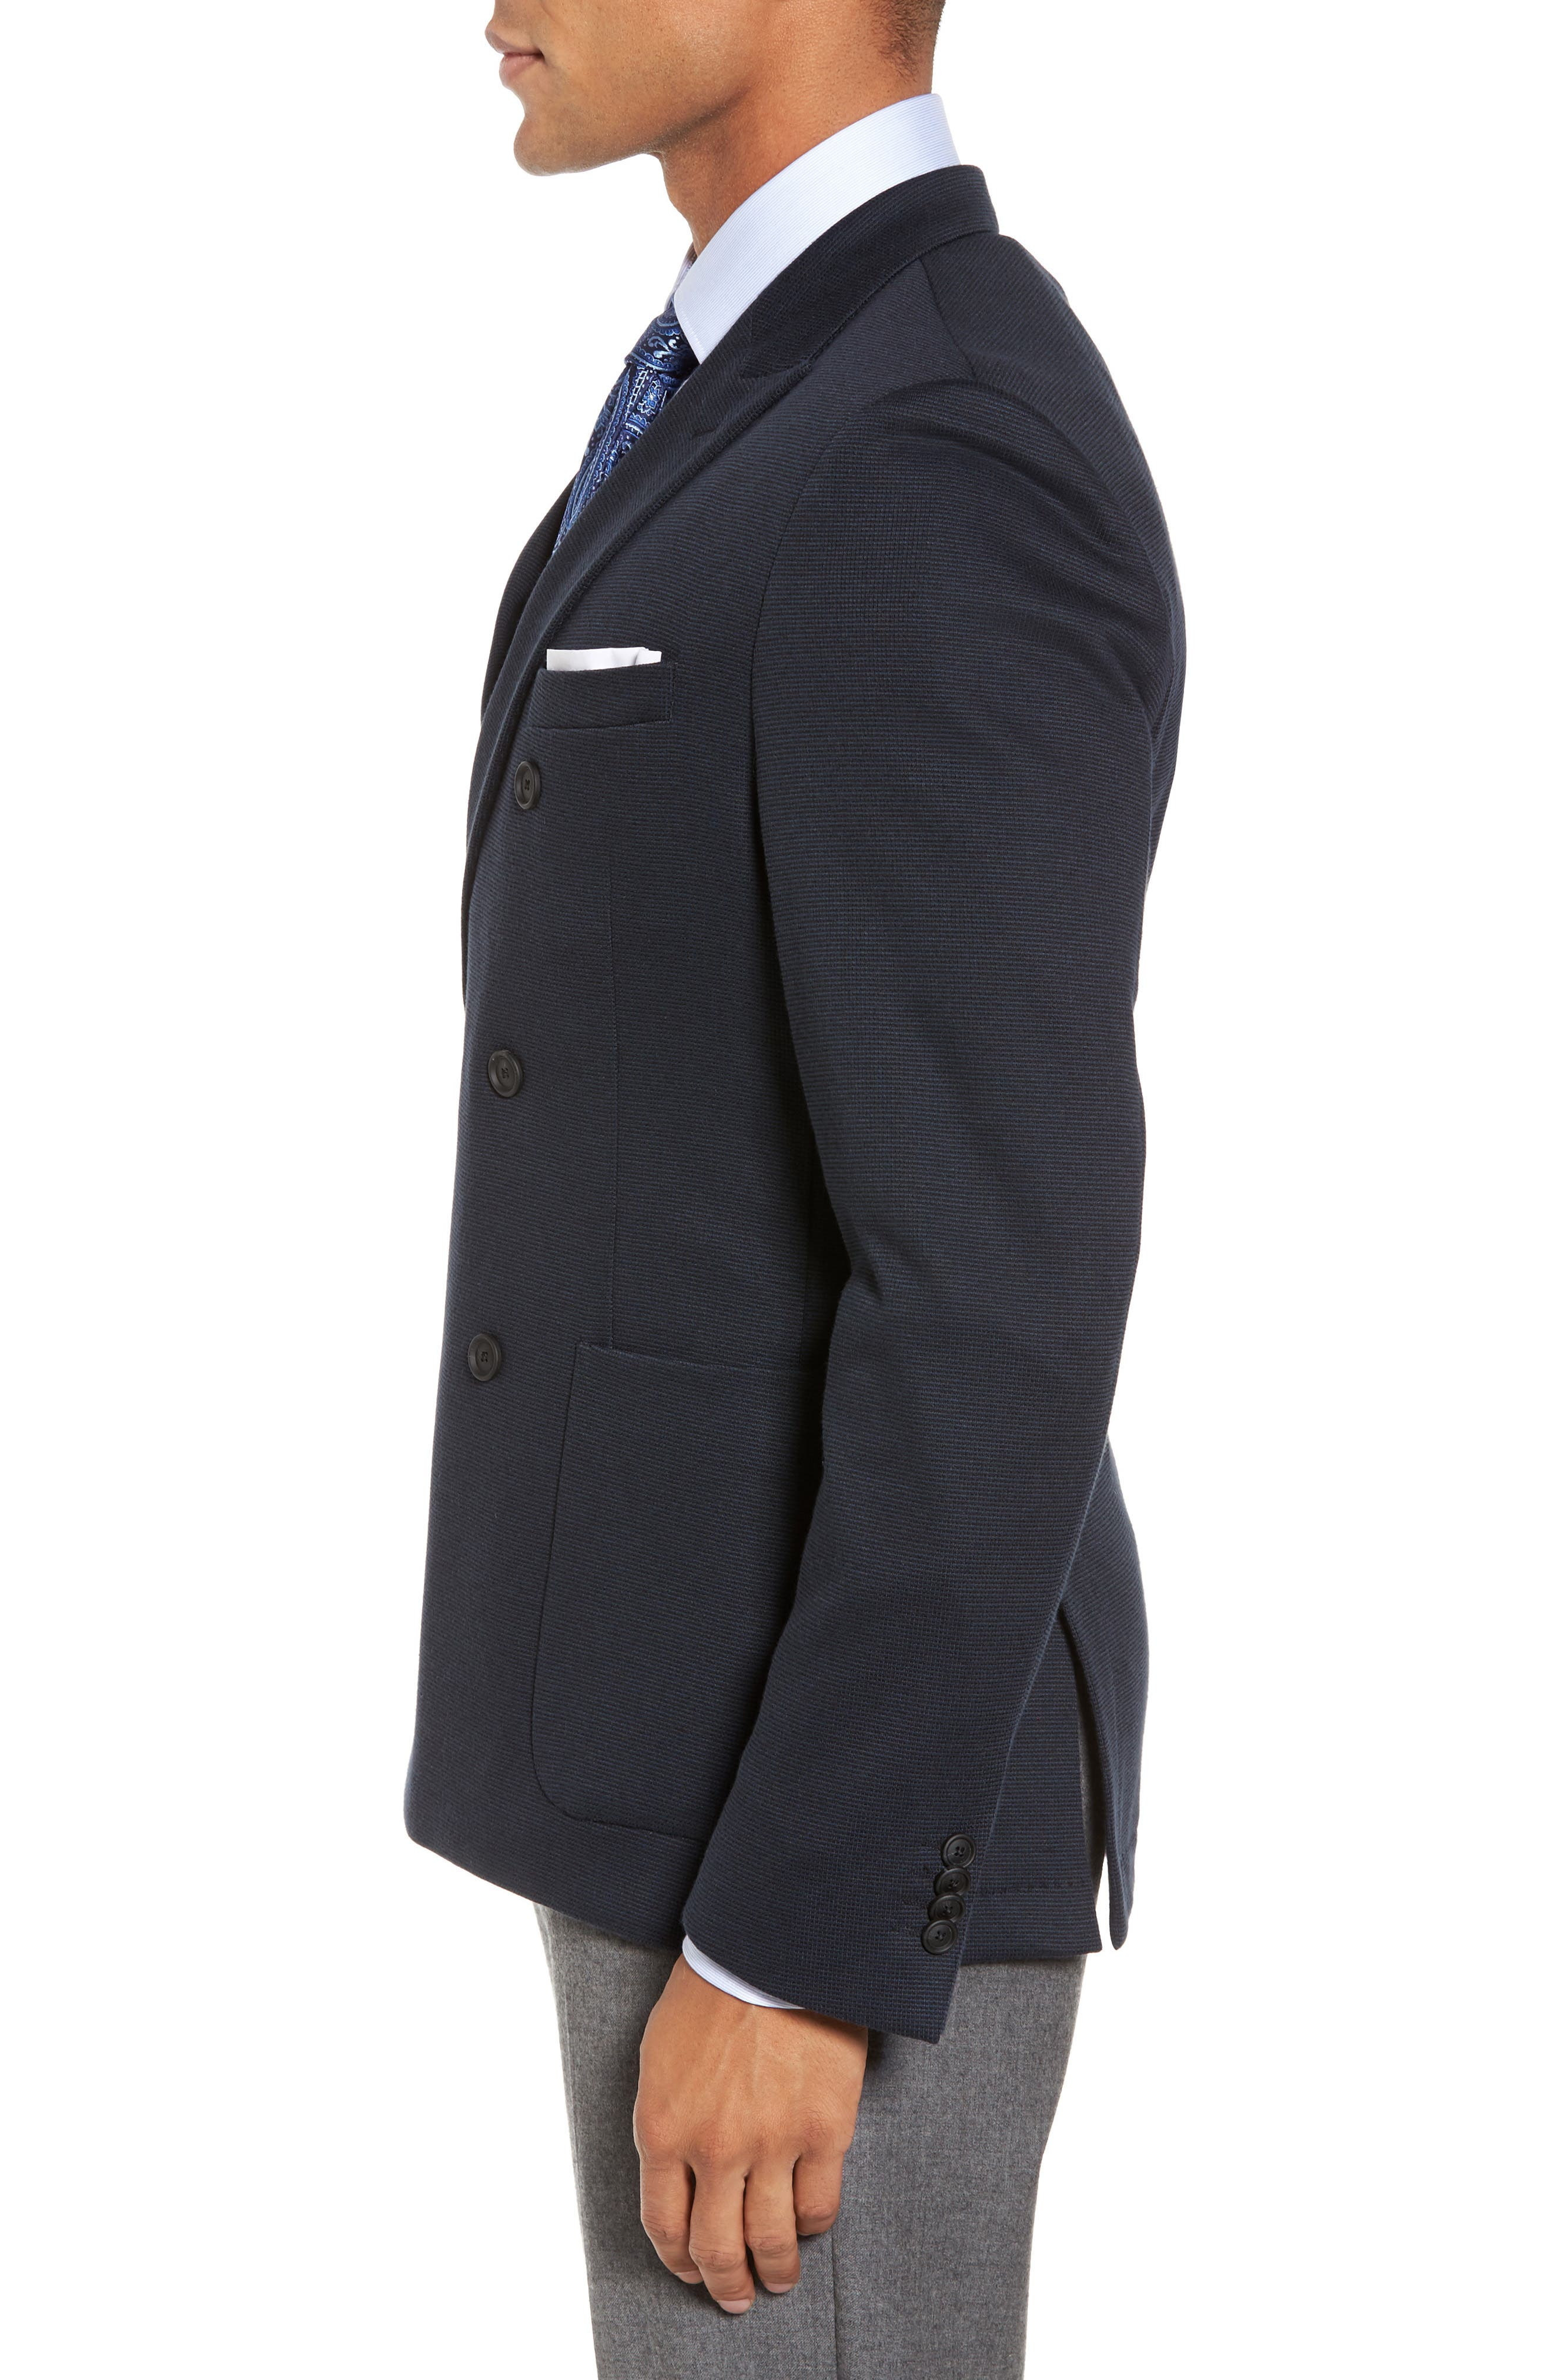 Nayler-J Trim Fit Double-Breasted Blazer,                             Alternate thumbnail 3, color,                             Navy